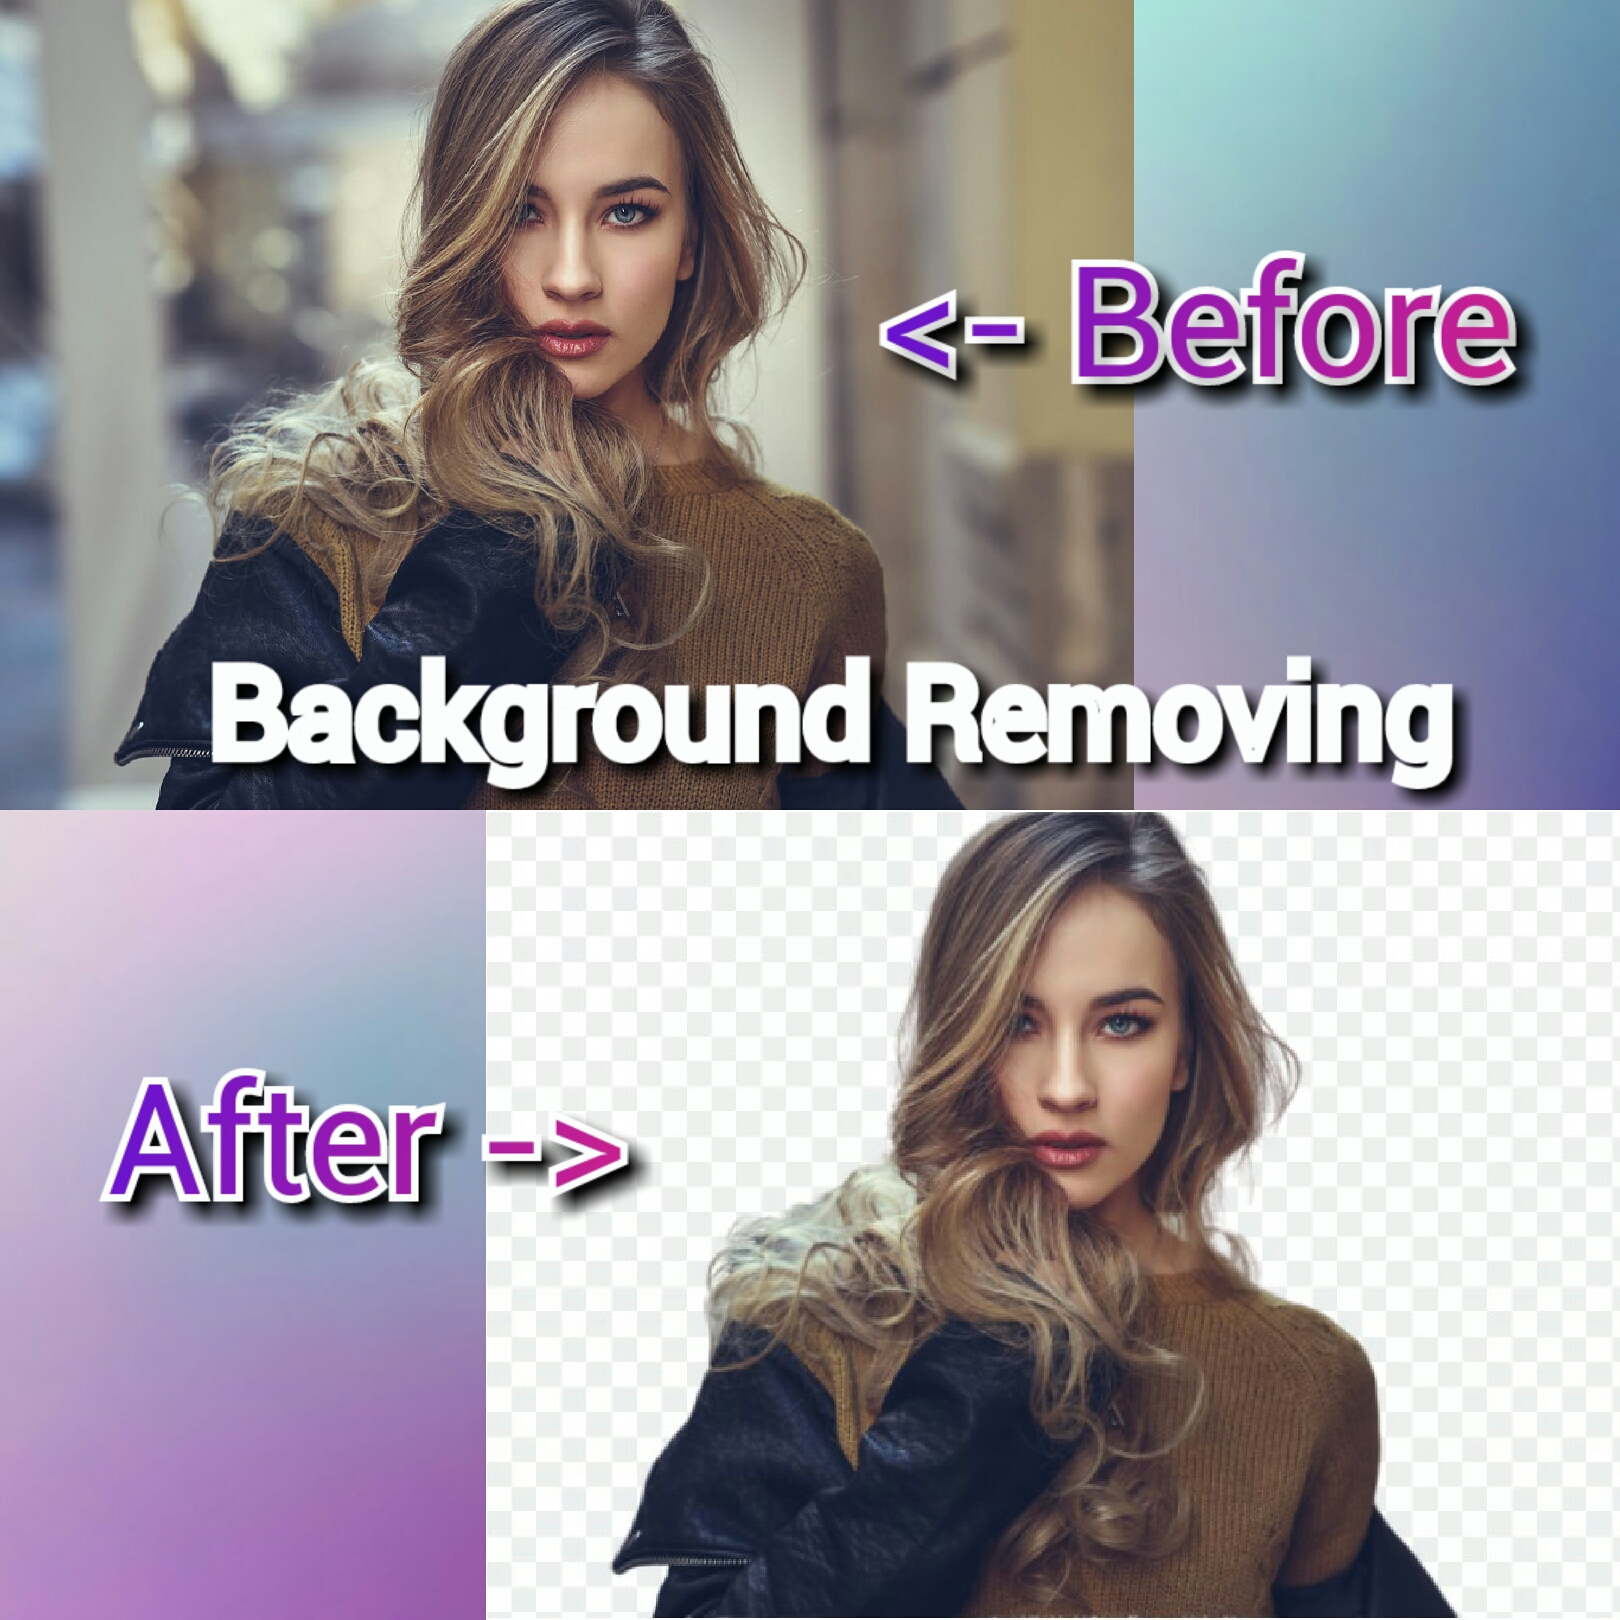 I will remove backgrounds of any 30 images within 24 hours.